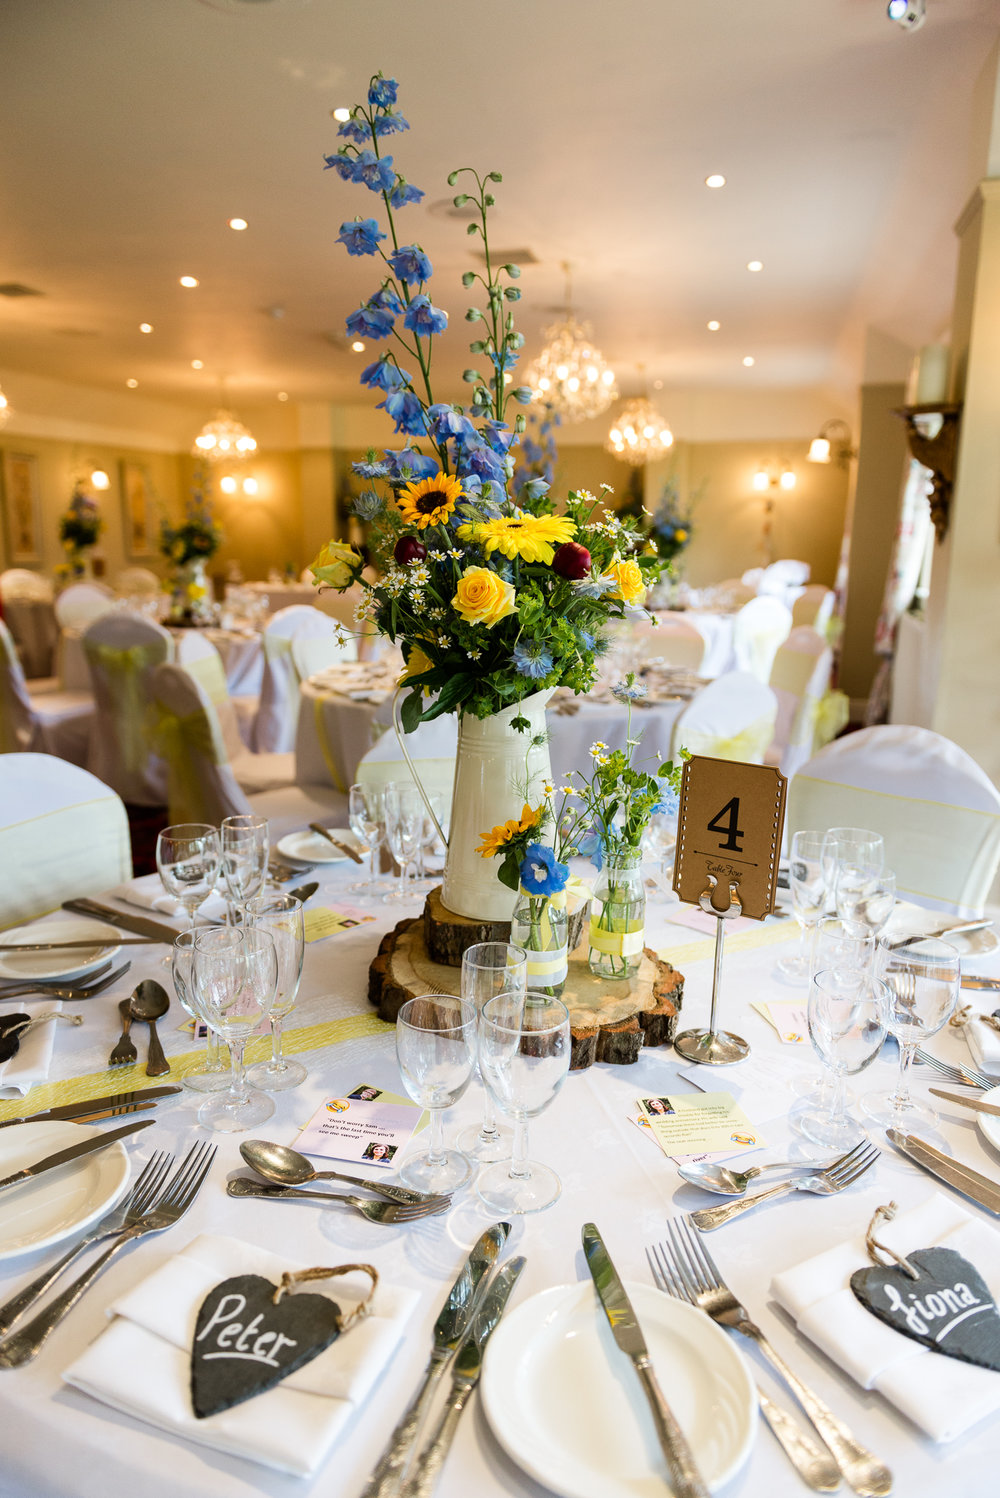 Rustic Country Wedding - The Swettenham Arms, Cheshire Lavender Field - Ceilidh - Jenny Harper Photography-42.jpg